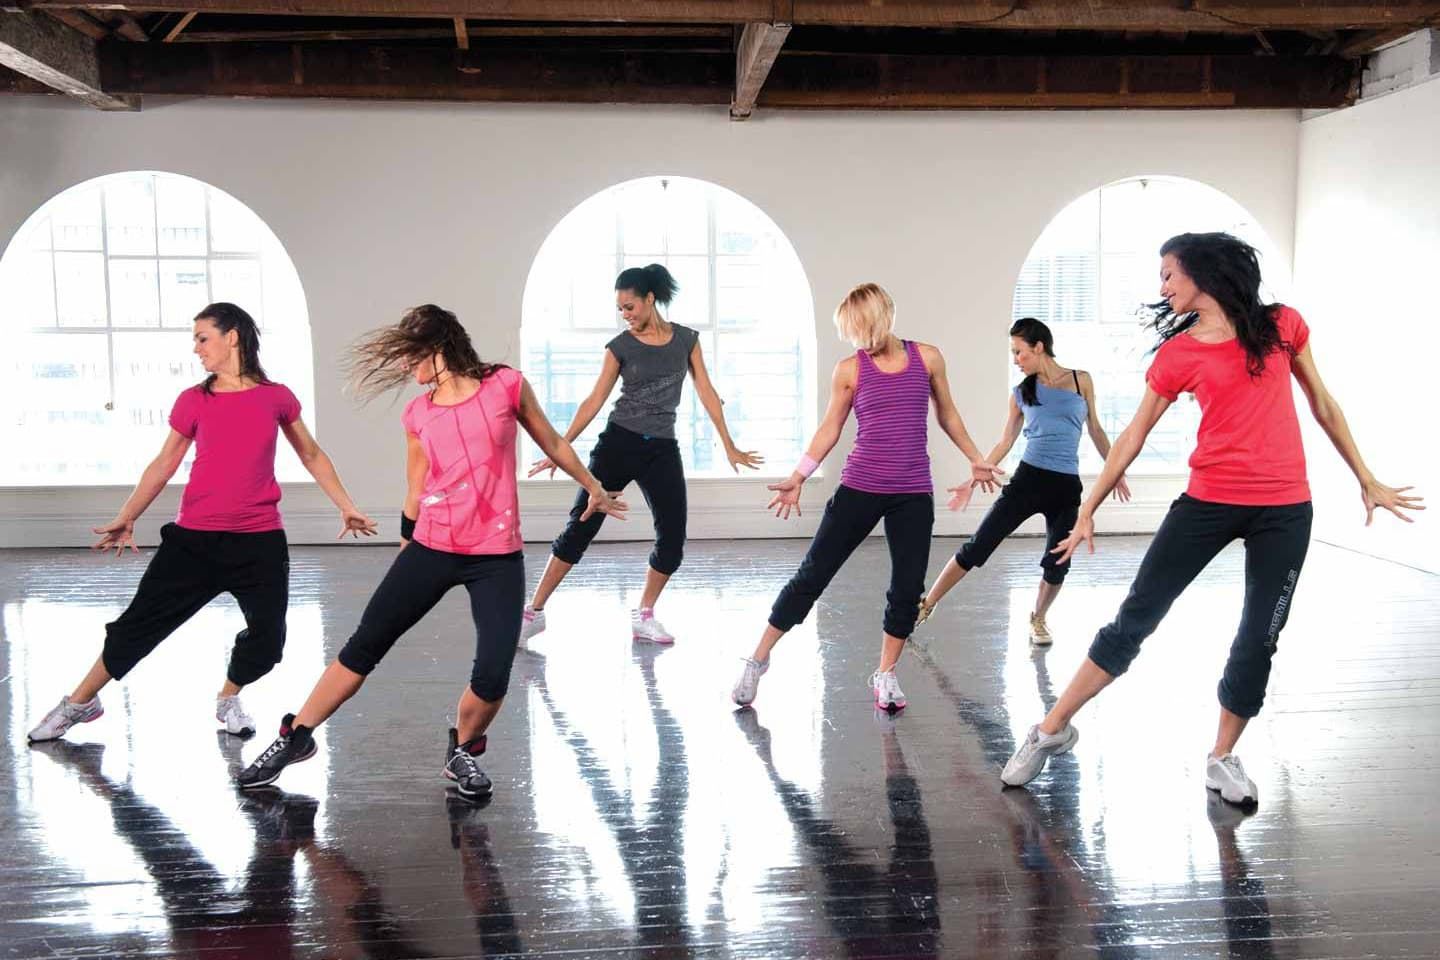 Dance fitness classes are now available